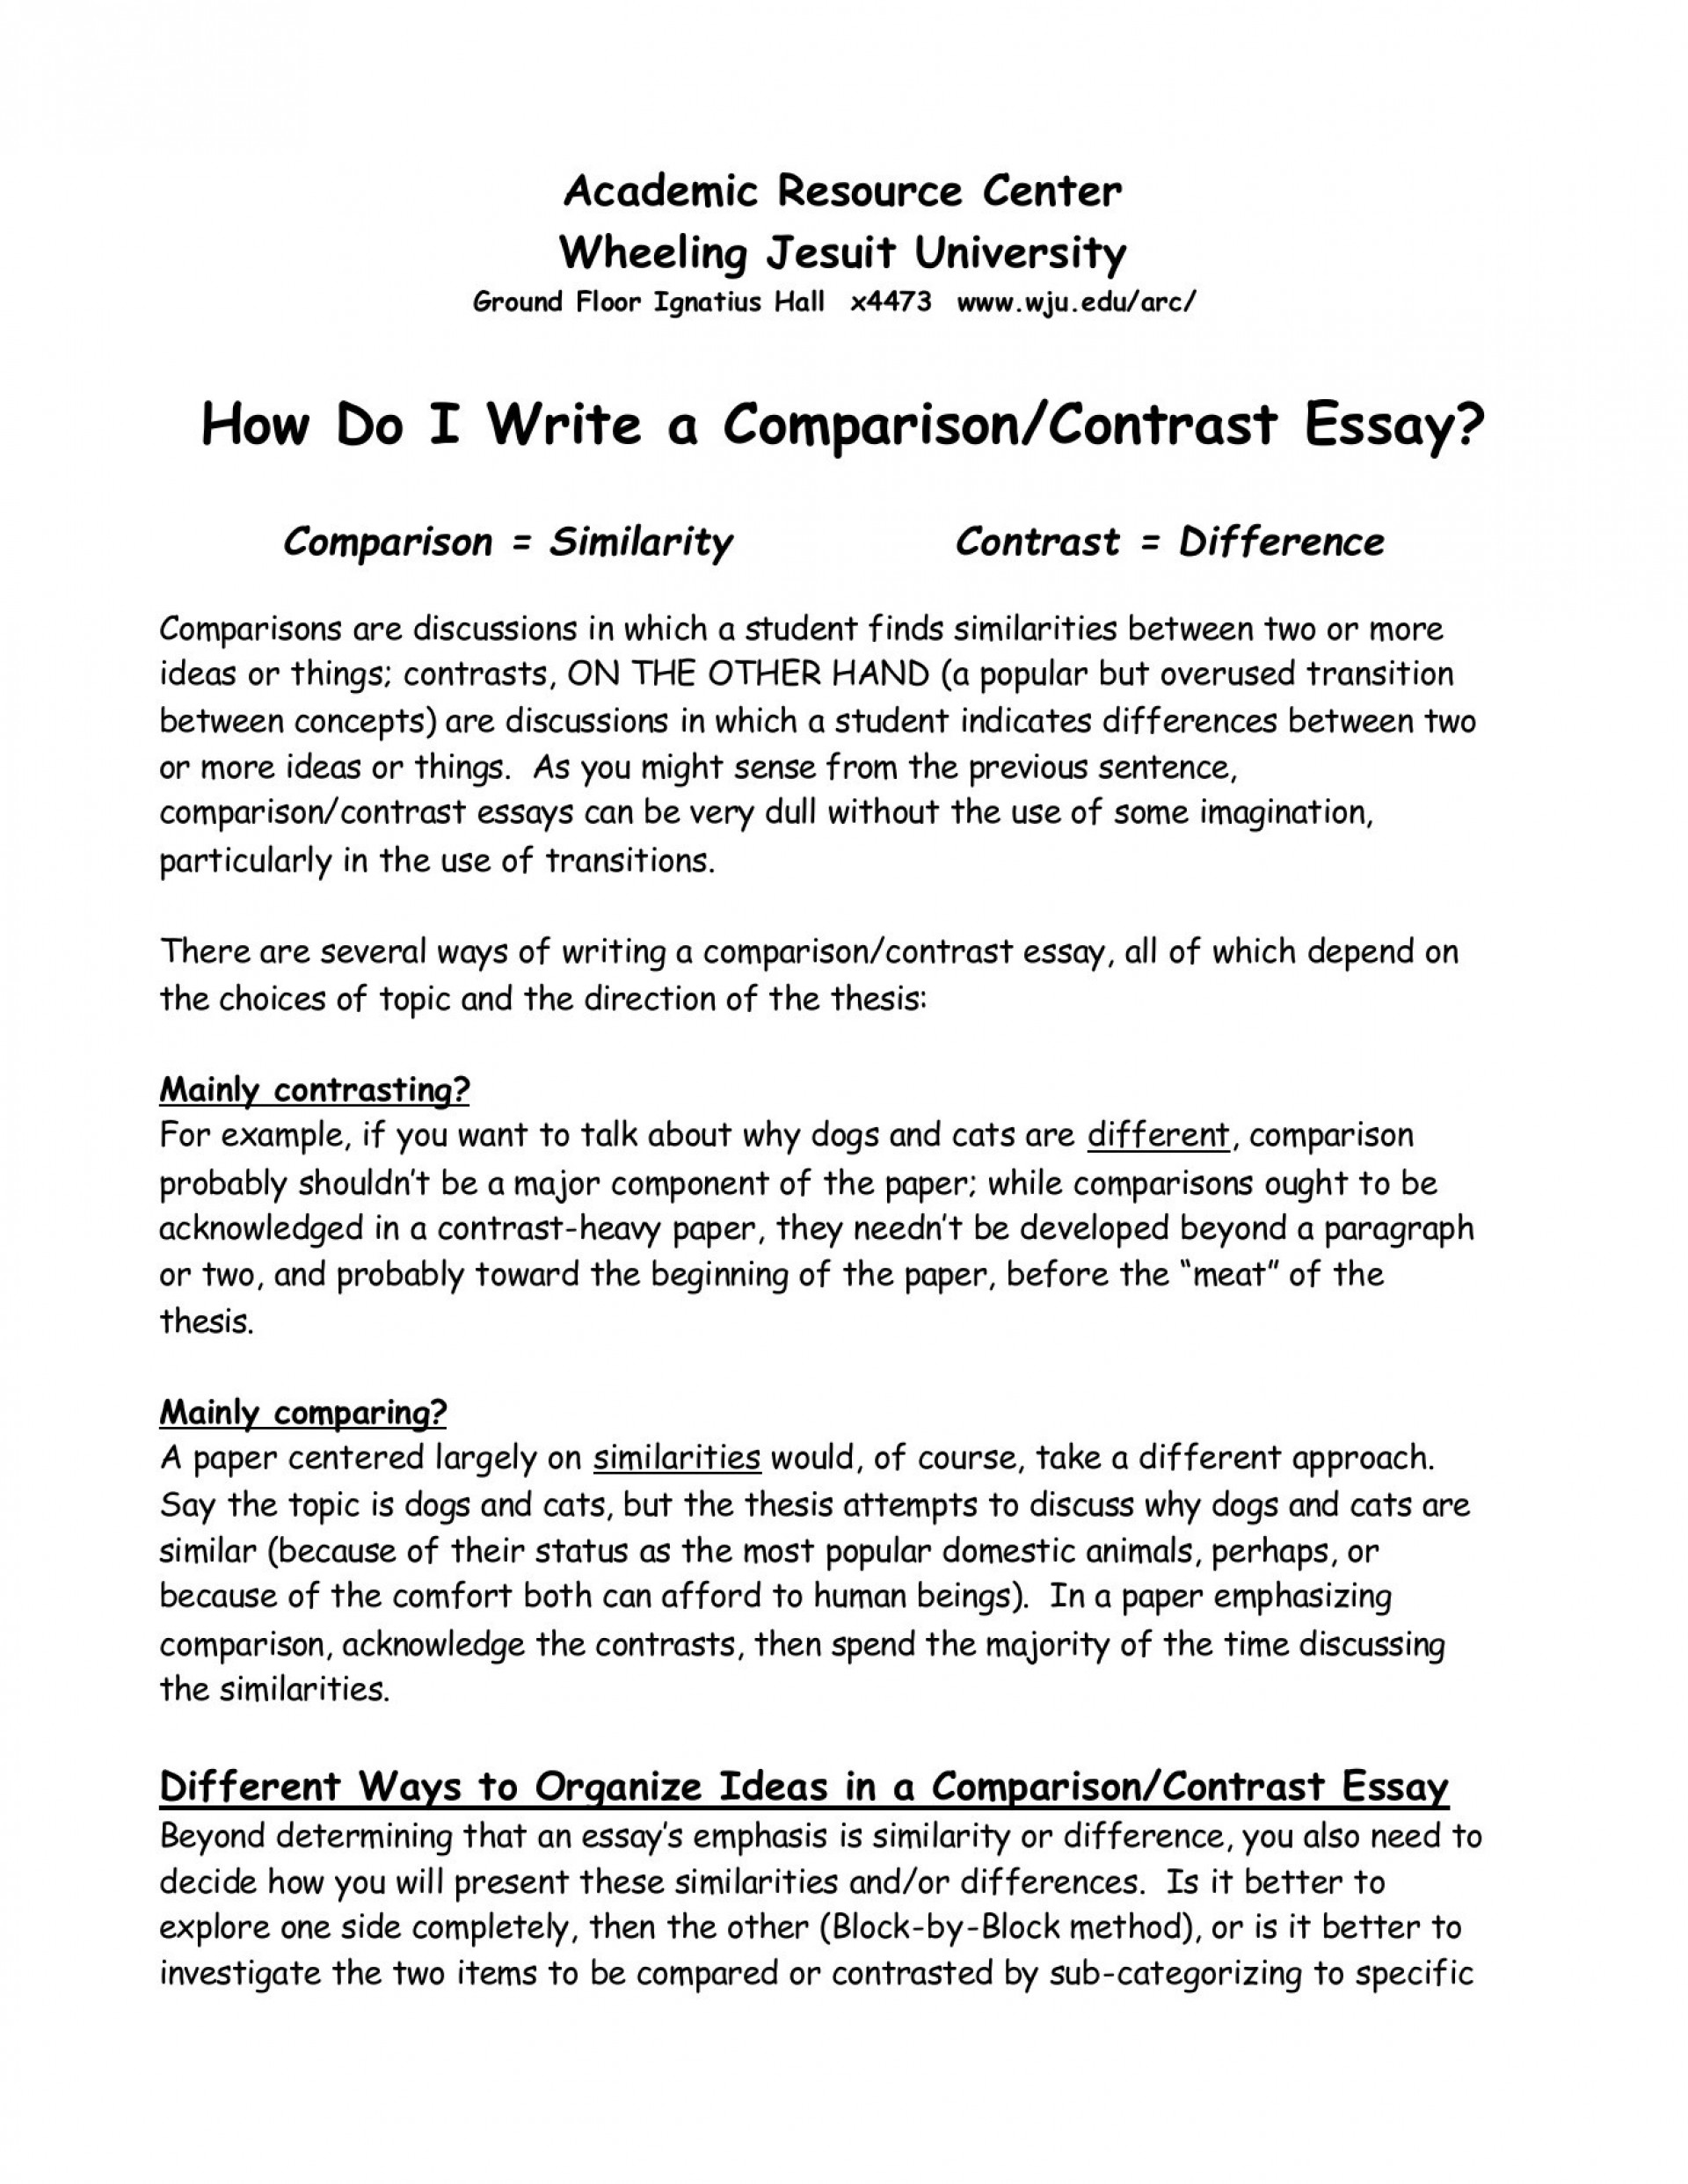 002 Essay Example Compare And Contrast Dog Excellent Cat Comparison Between Cats Dogs Pet 1920